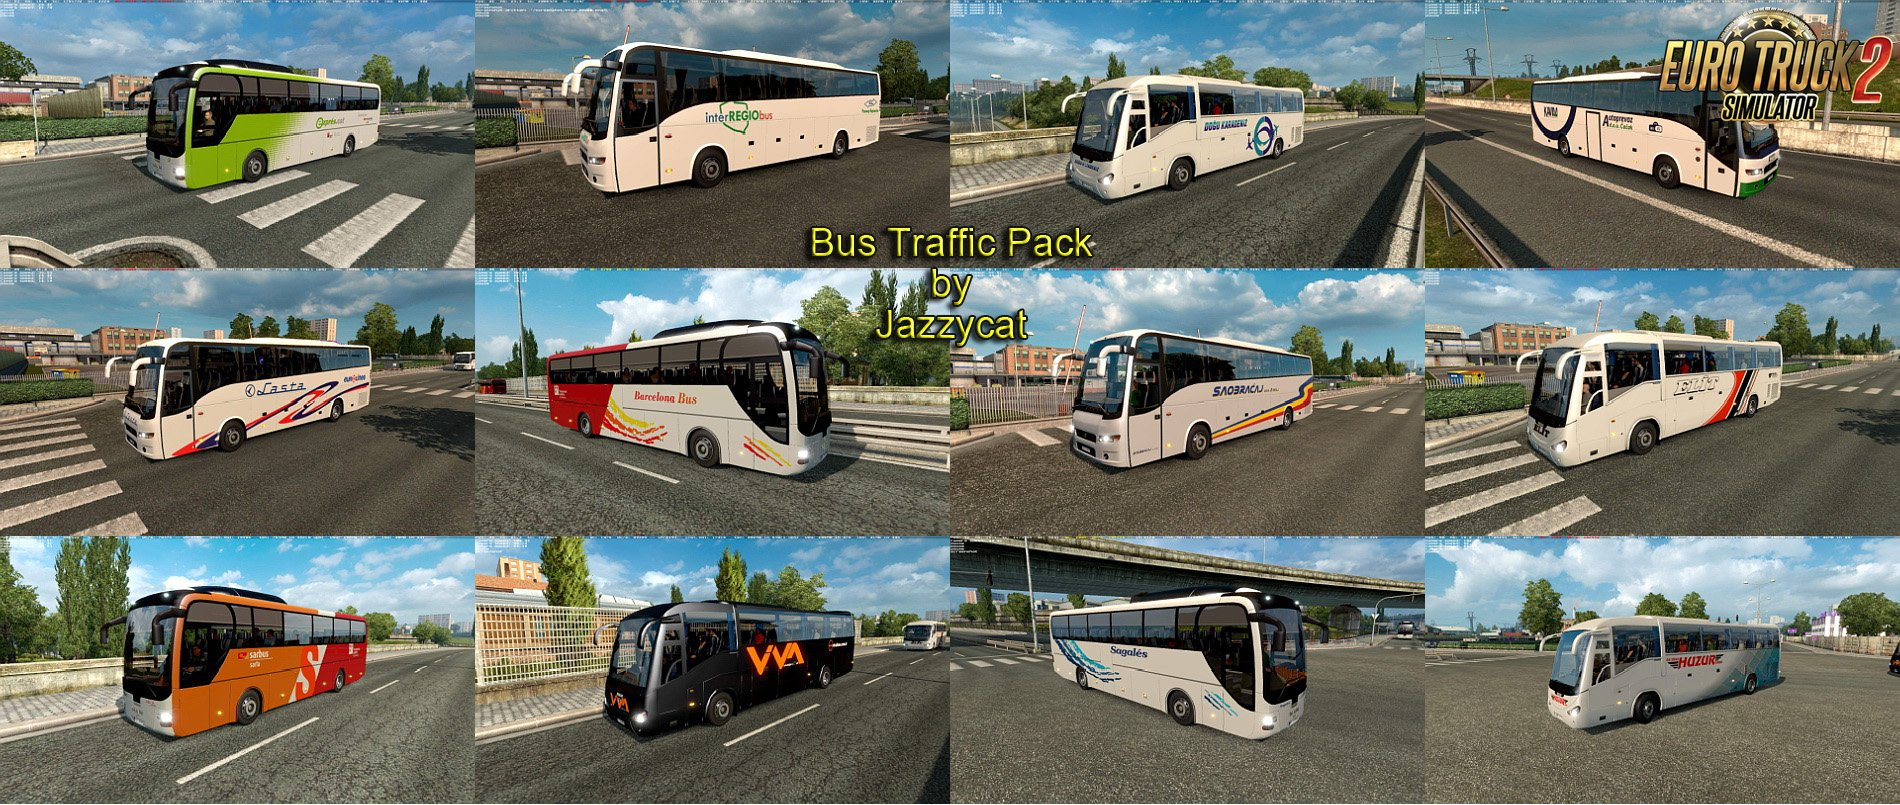 Bus Traffic Pack v2.0 by Jazzycat